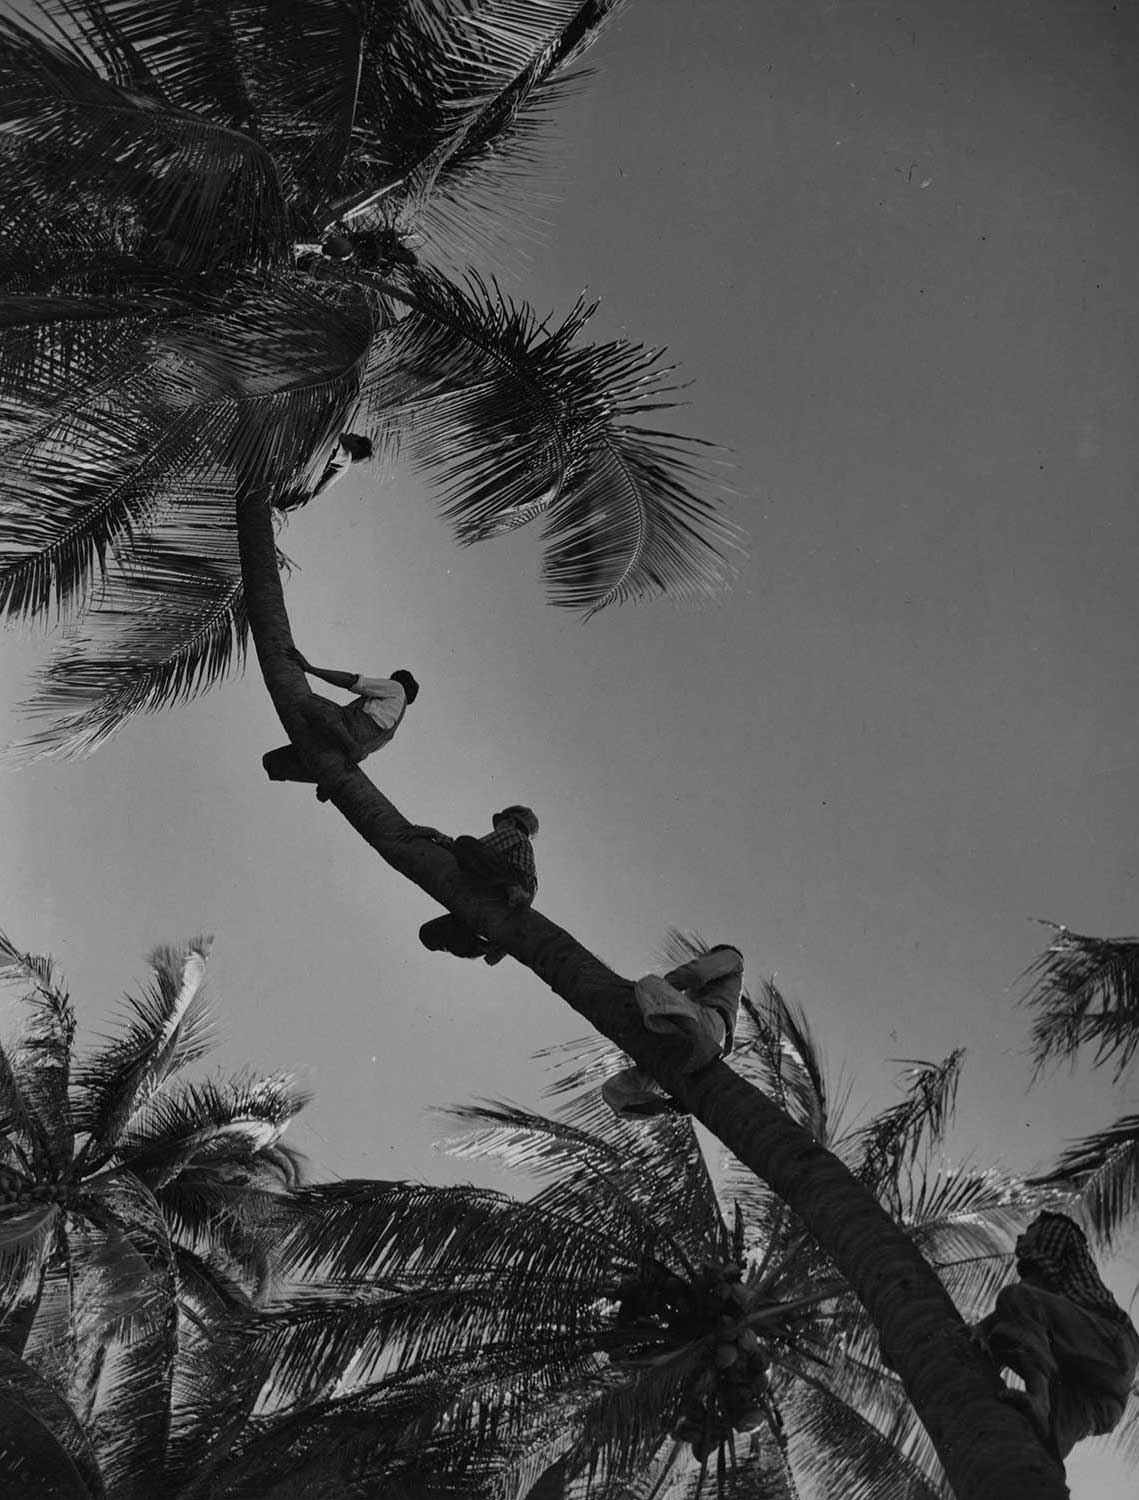 Black and white developed photo multiple coconut farmers climbing a tree.